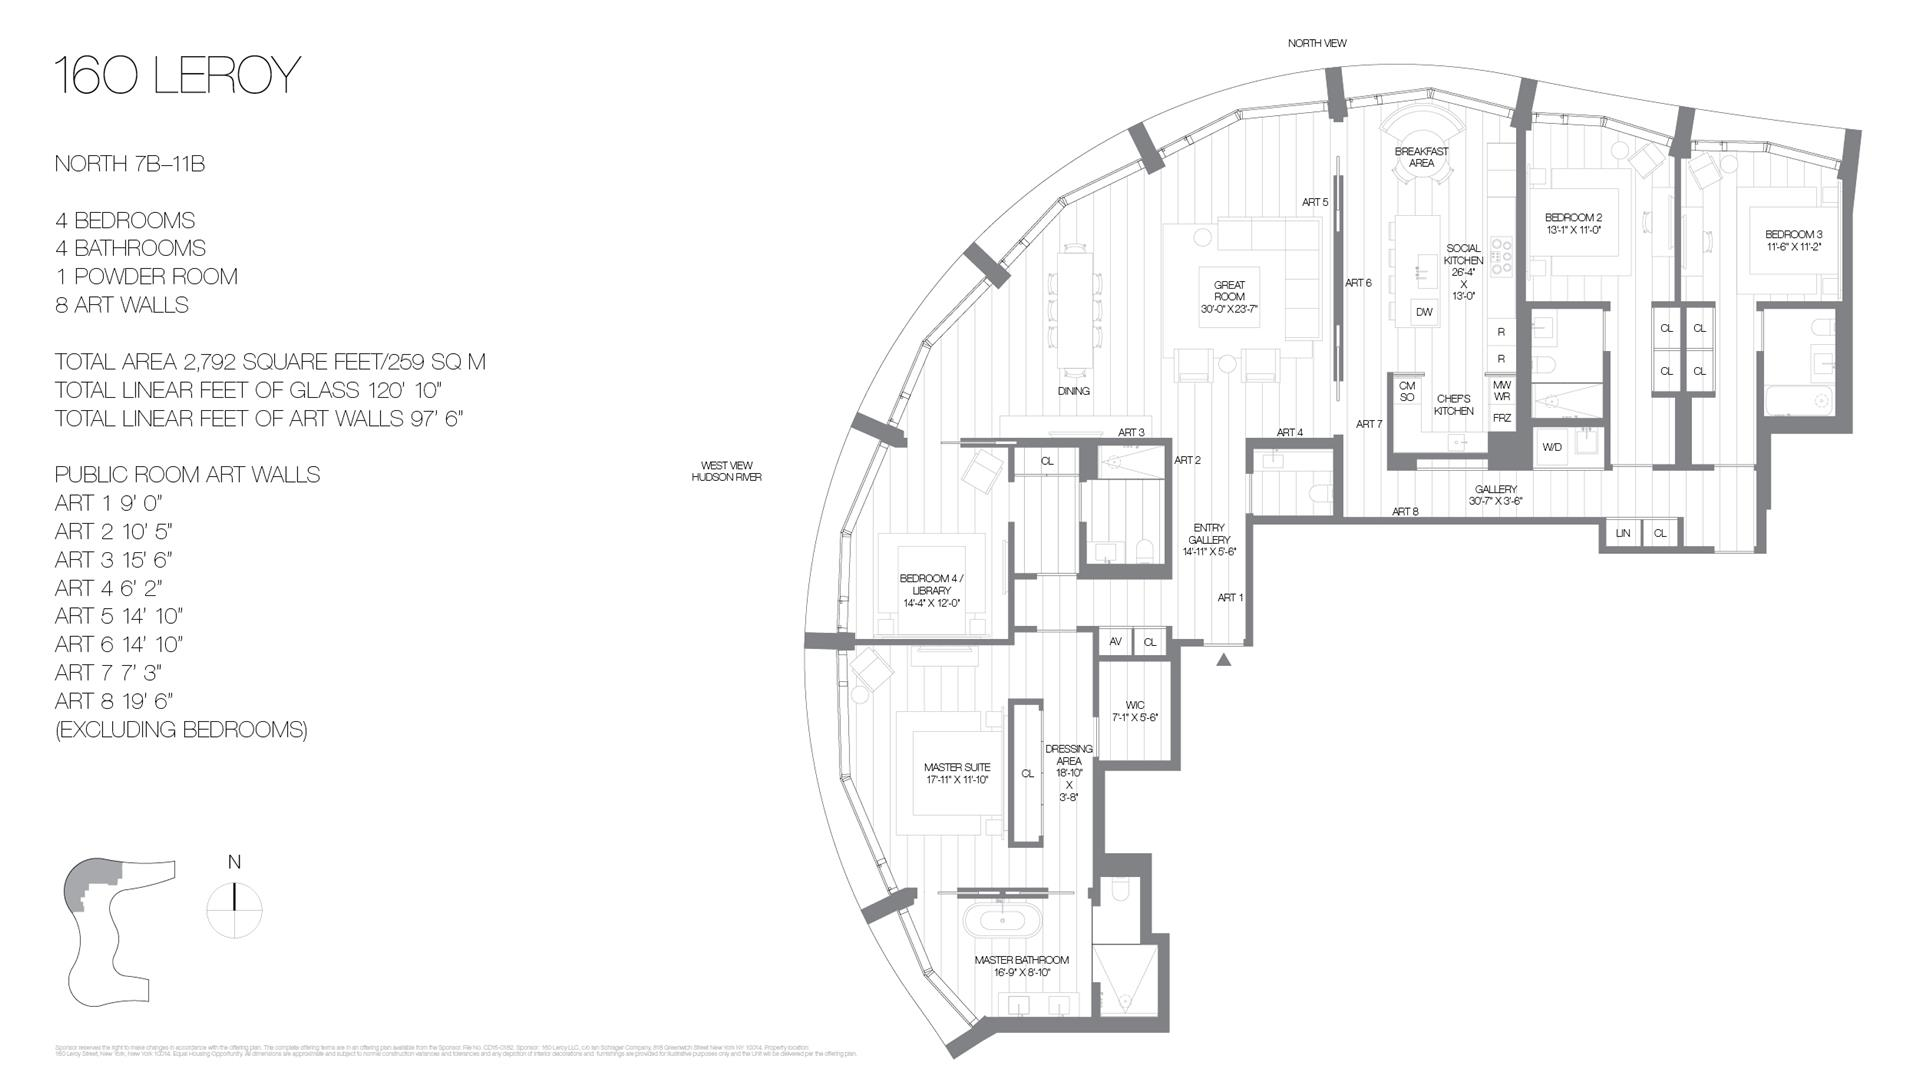 Floor plan of 160 Leroy St, NORTH7B - West Village - Meatpacking District, New York